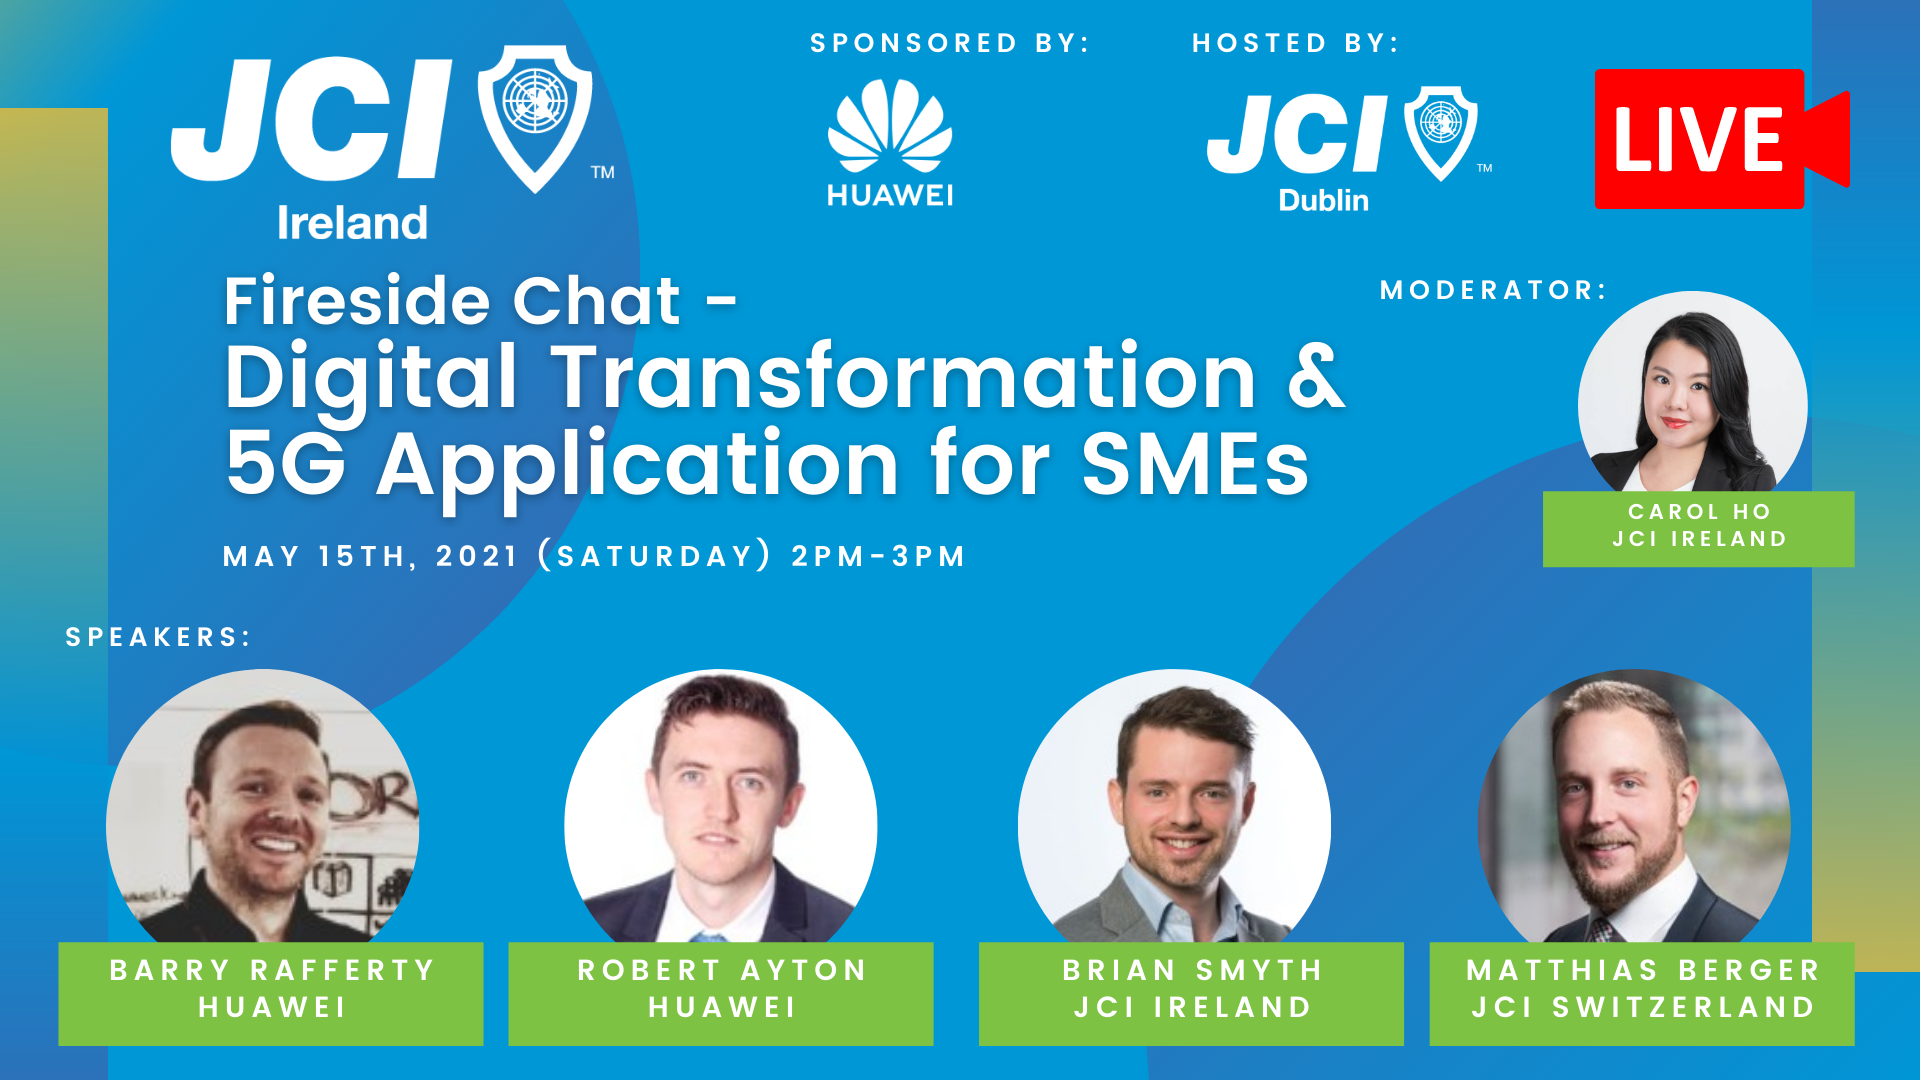 Fireside Chat: Digital Transformation & 5G Applications for SMEs